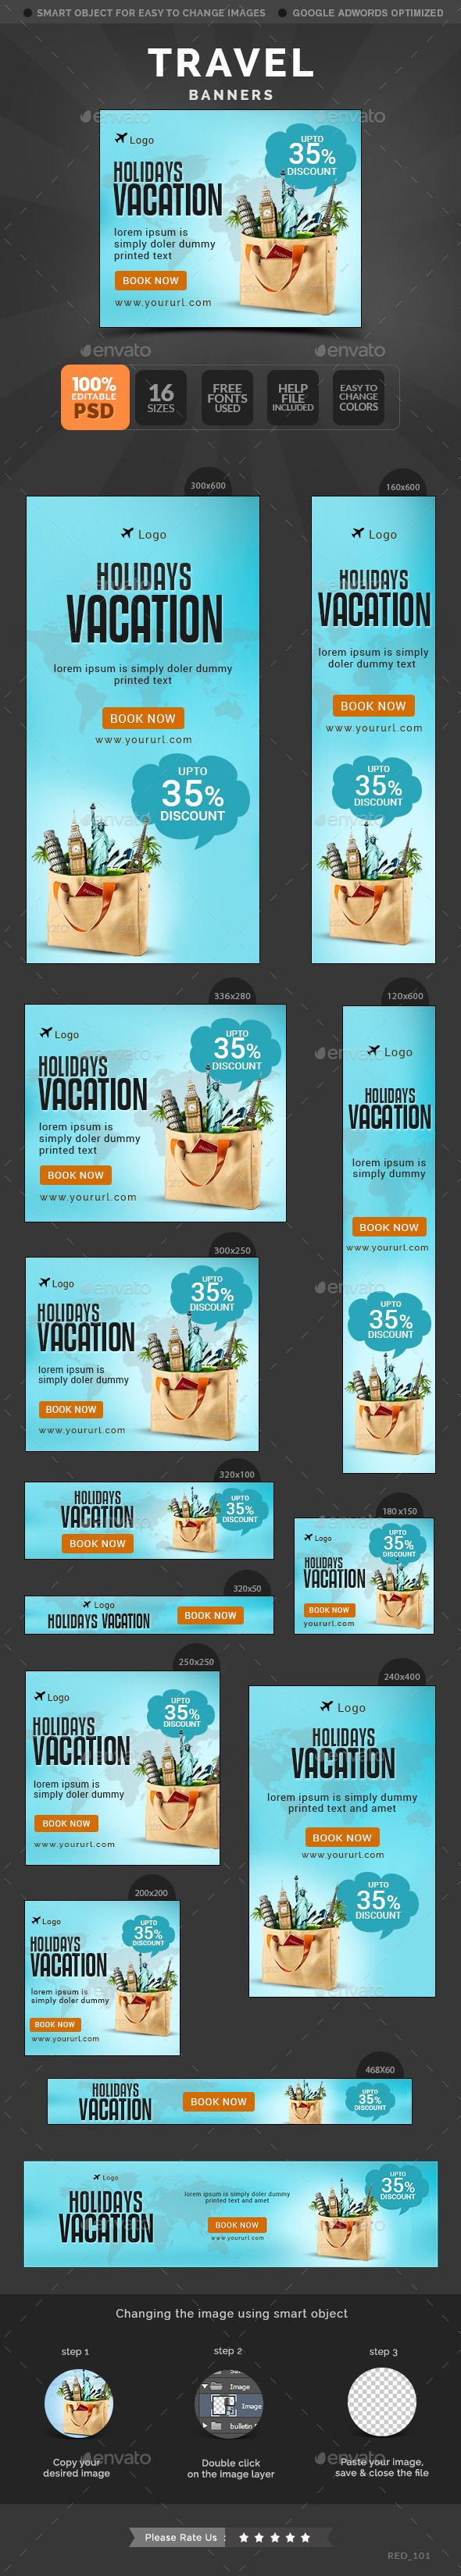 16 awesome quality banner template PSD files ready for your Services, products, campaigns.Each PSD files are layered and fully organized. You can use this banners for google adwords & Adroll too. ( All google adwords, Adroll banner sizes included)